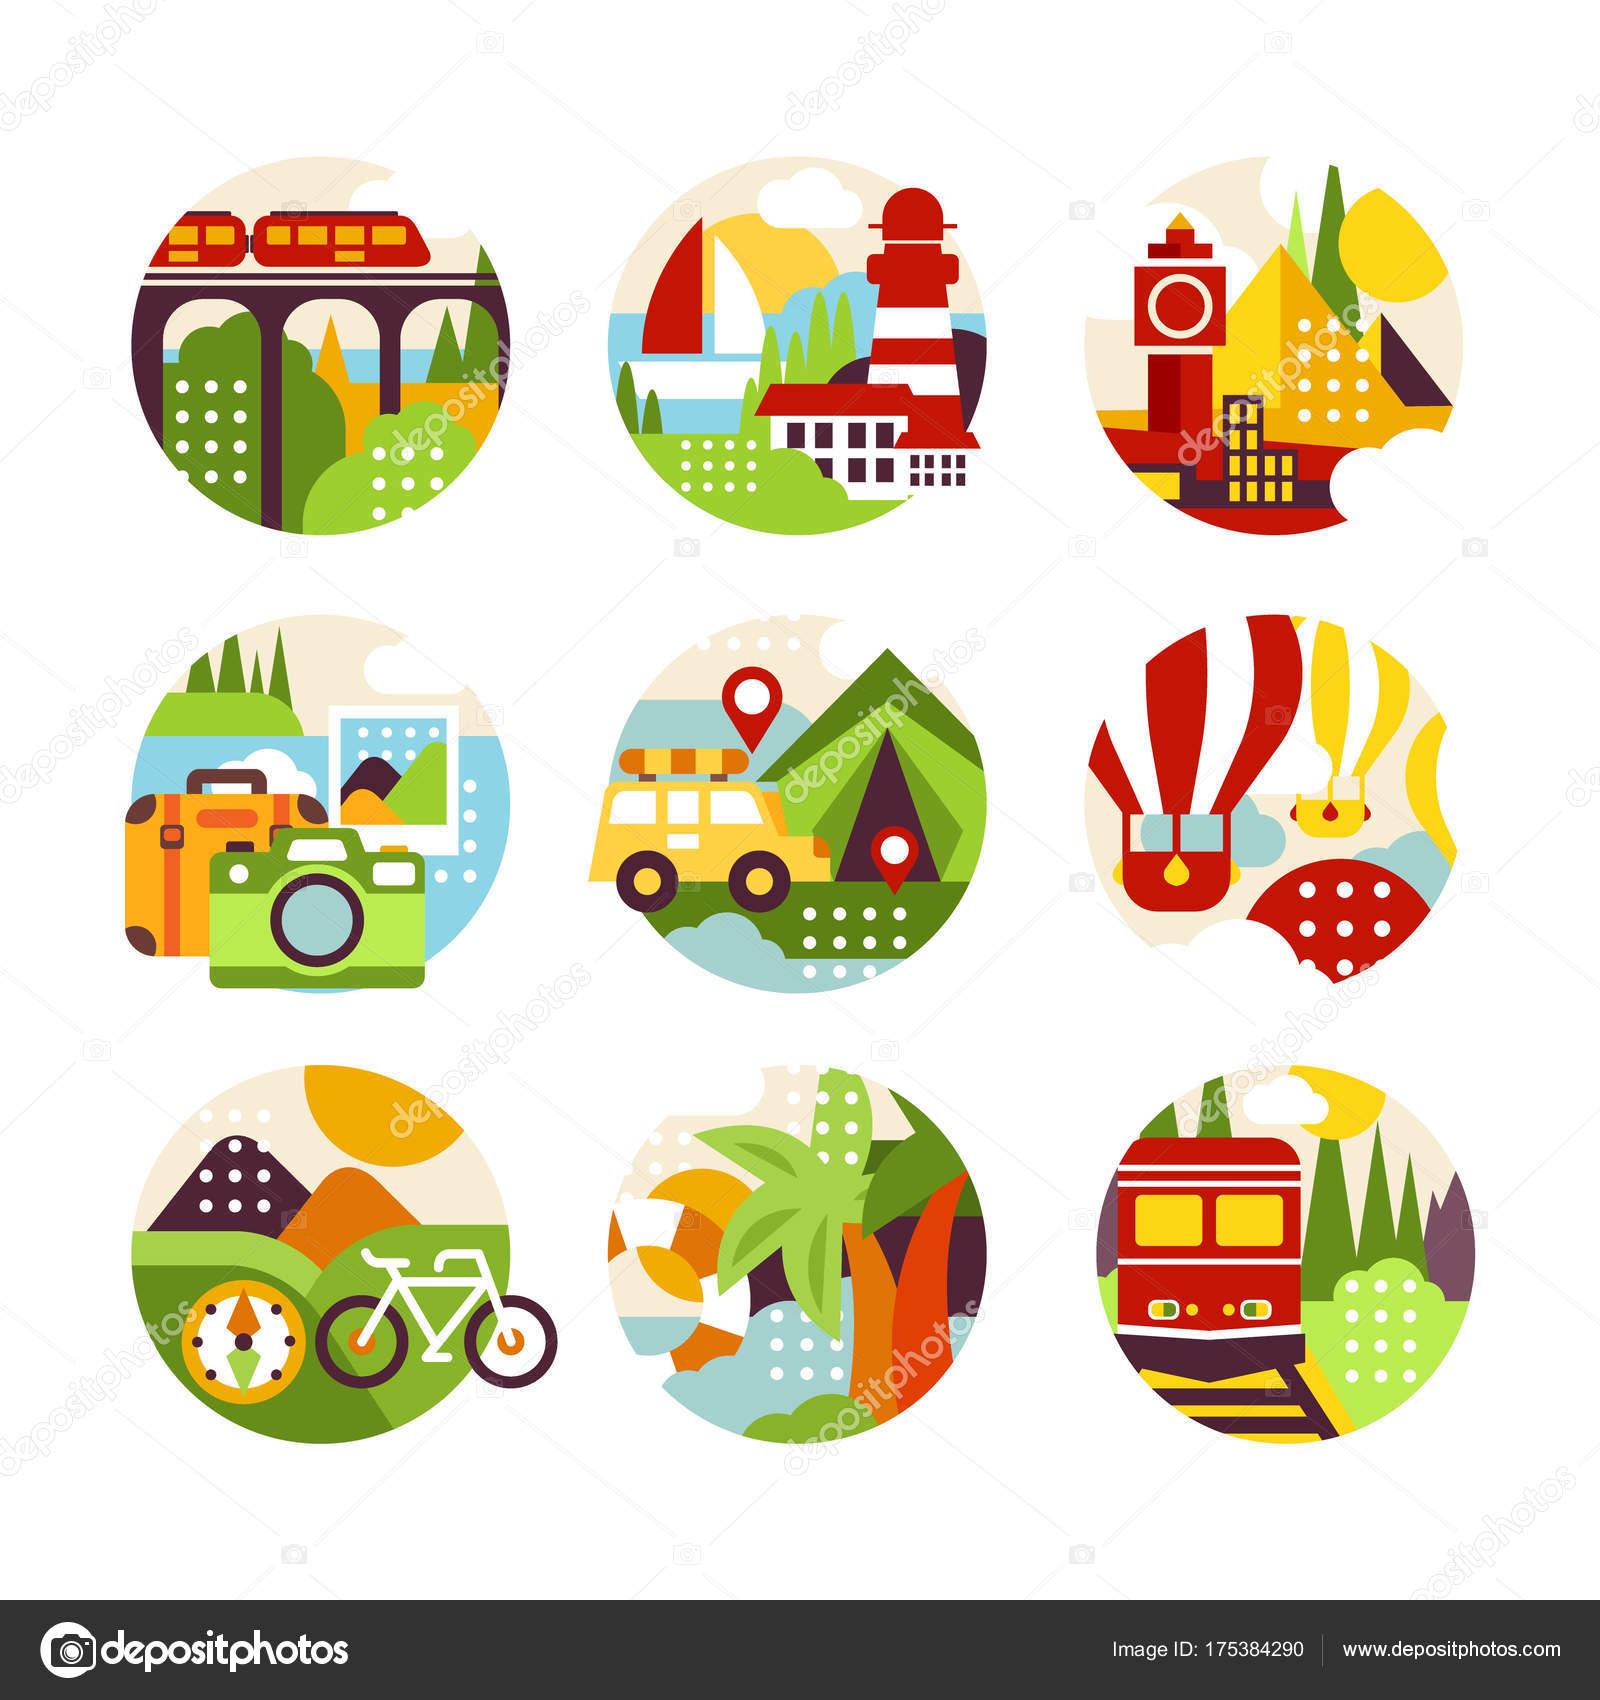 Collection of flat natural circle logo with landscape, city